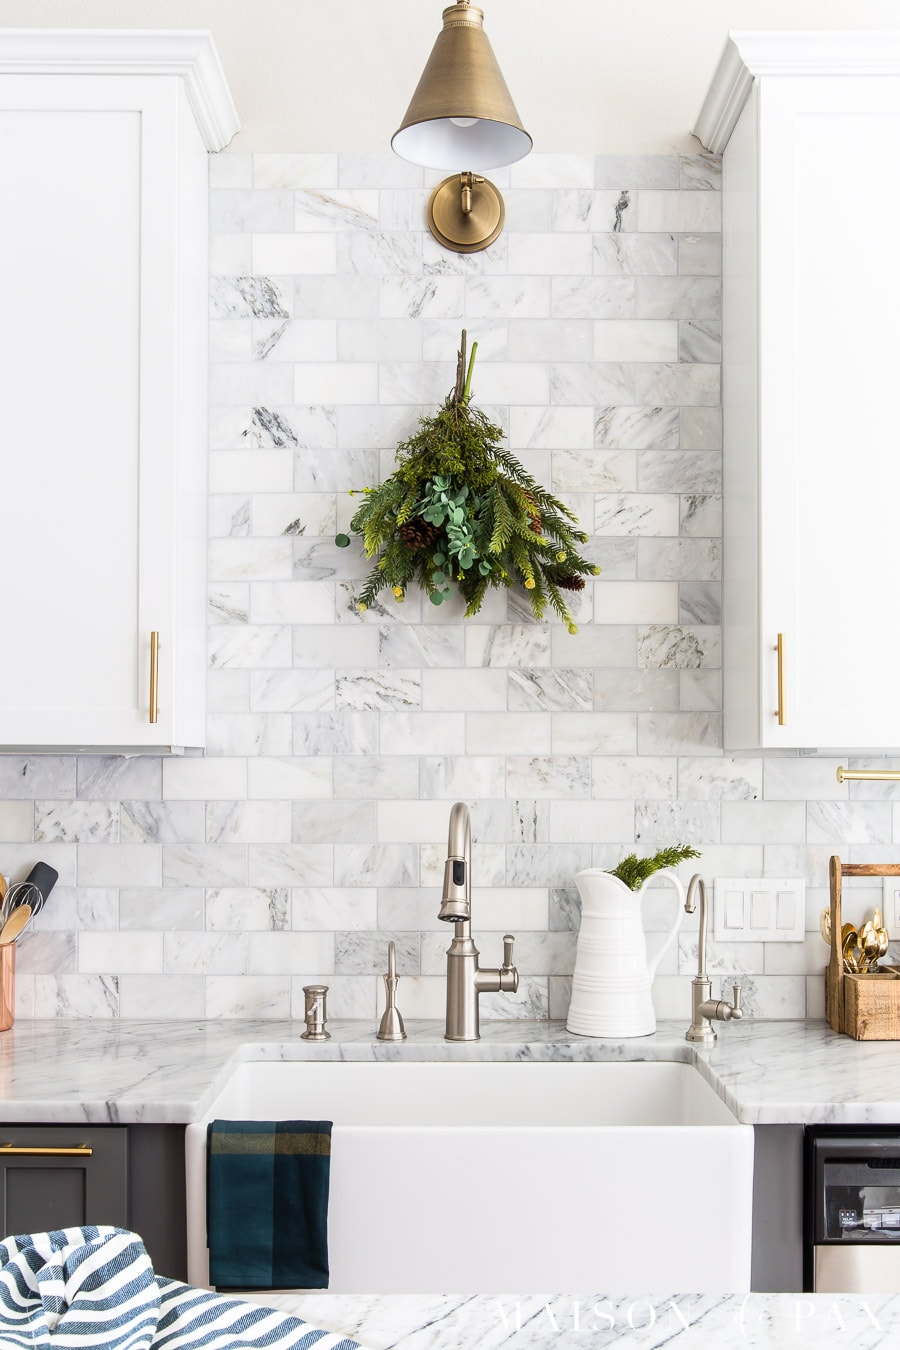 Christmas Kitchen Decor: Natural, Fresh, Simple - Maison de Pax on remodeling ideas for kitchen, christmas decorations above kitchen cabinets, christmas decor for kitchen, design ideas for kitchen, organizing ideas for kitchen, christmas centerpieces for kitchen, christmas kitchen decor idea, color ideas for kitchen, home ideas for kitchen, christmas crafts for kitchen, christmas lights for kitchen, diy for kitchen, storage ideas for kitchen, paint ideas for kitchen, italy ideas for kitchen, lighting ideas for kitchen, sewing ideas for kitchen, painting ideas for kitchen, vintage ideas for kitchen, christmas rugs for kitchen,